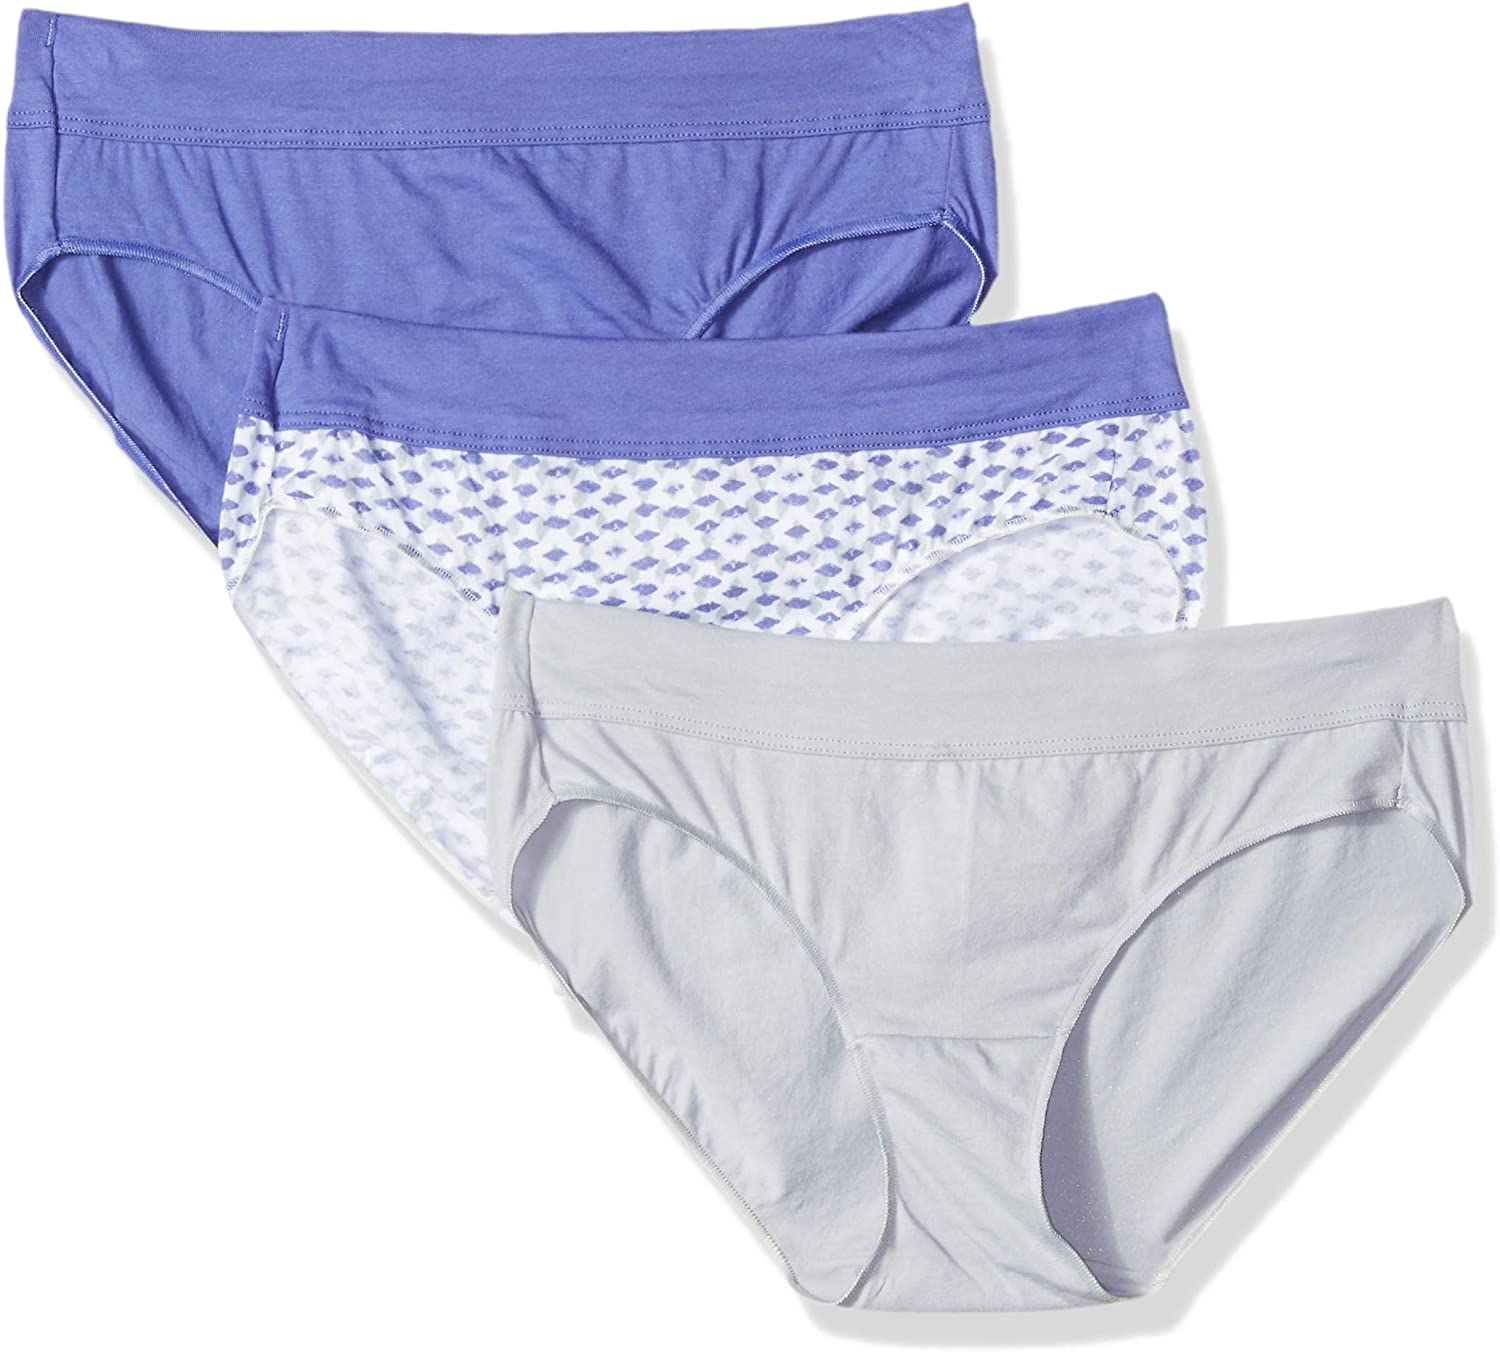 Hanes Women's Constant Comfort X-Temp Hipster Panty (Pack of 3)(Assorted Colors) at  Women's Clothing store